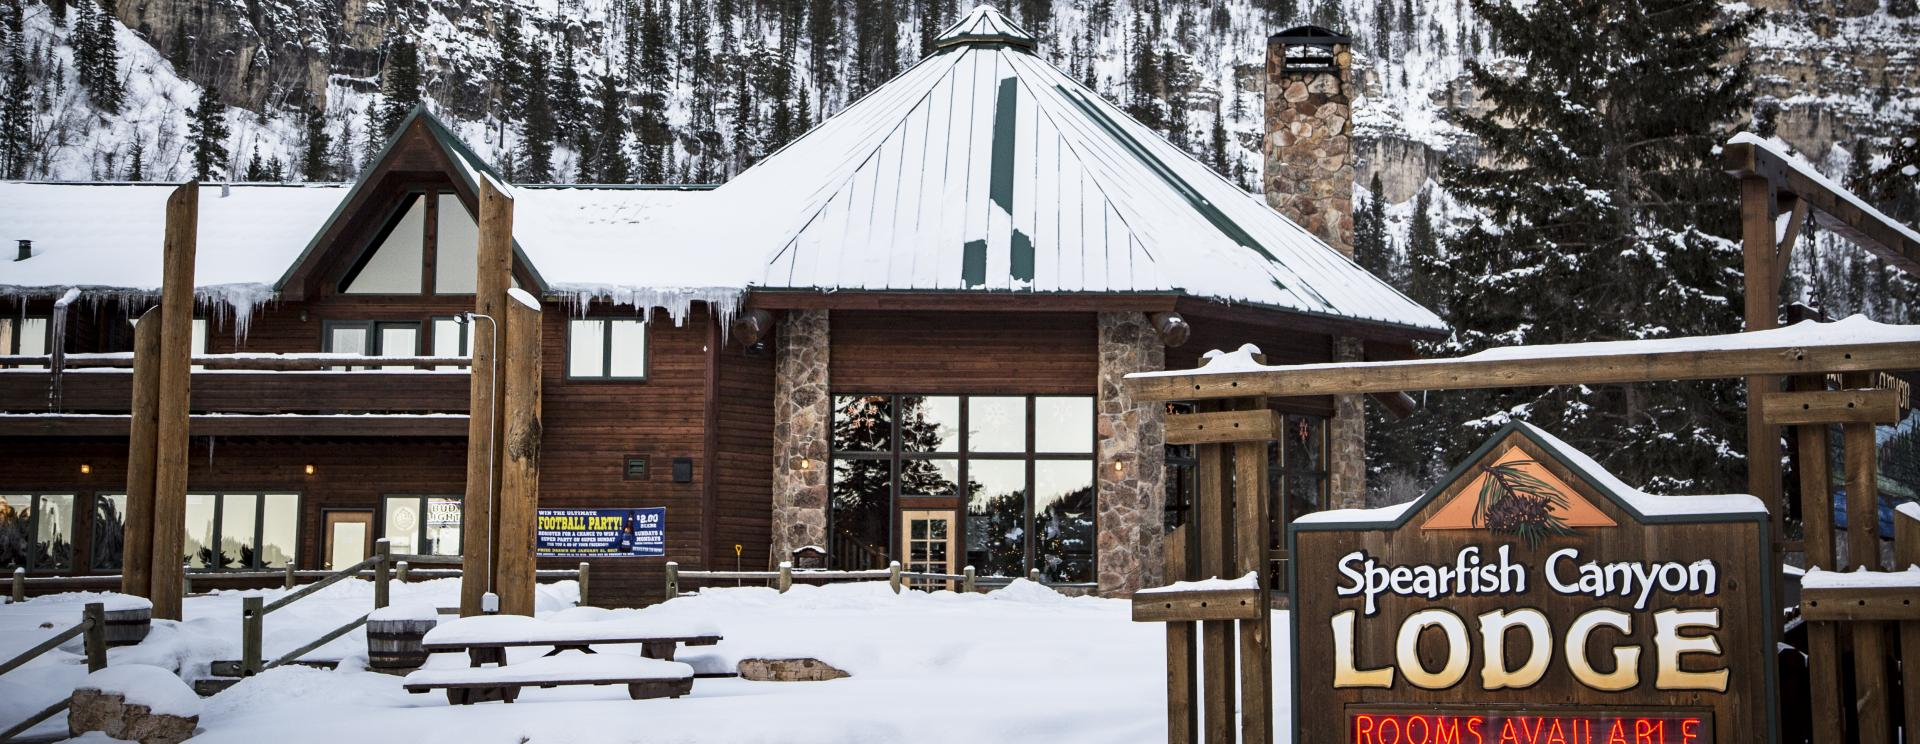 Adventures At Spearfish Canyon Lodge